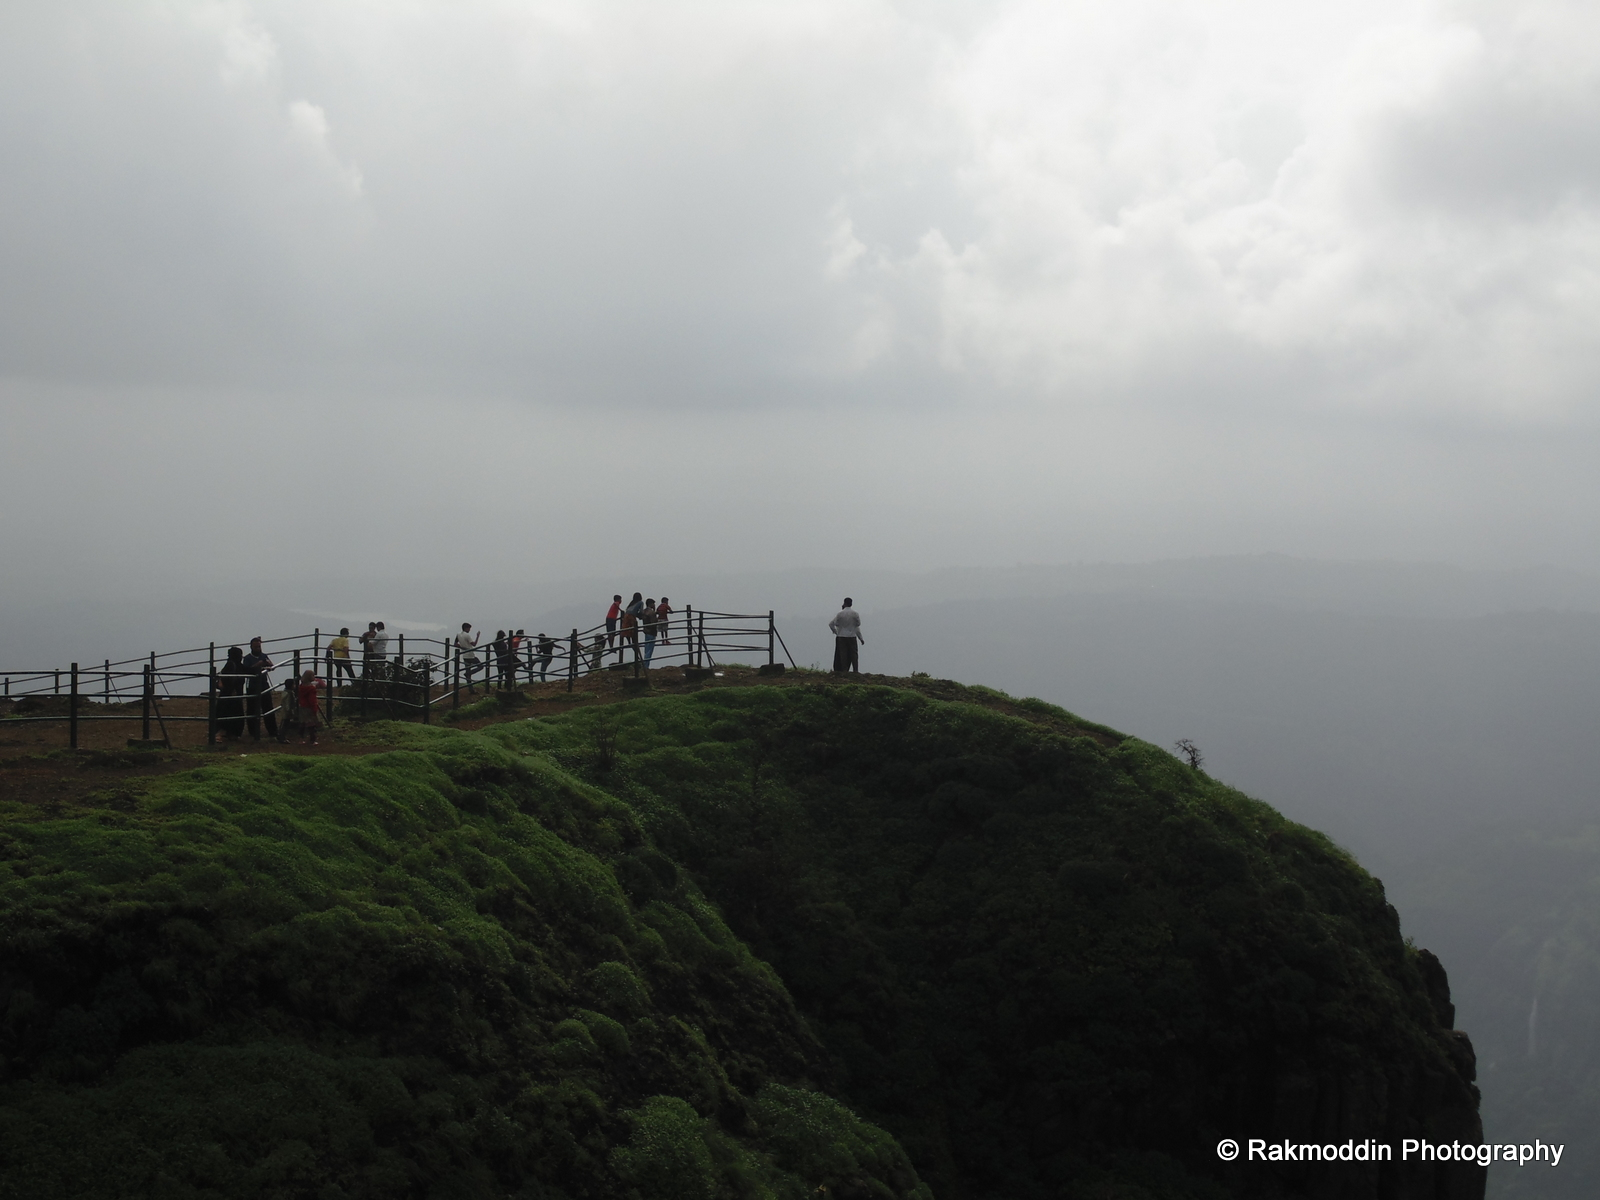 Lions point in Lonaval, Near pune, Maharashtra, India